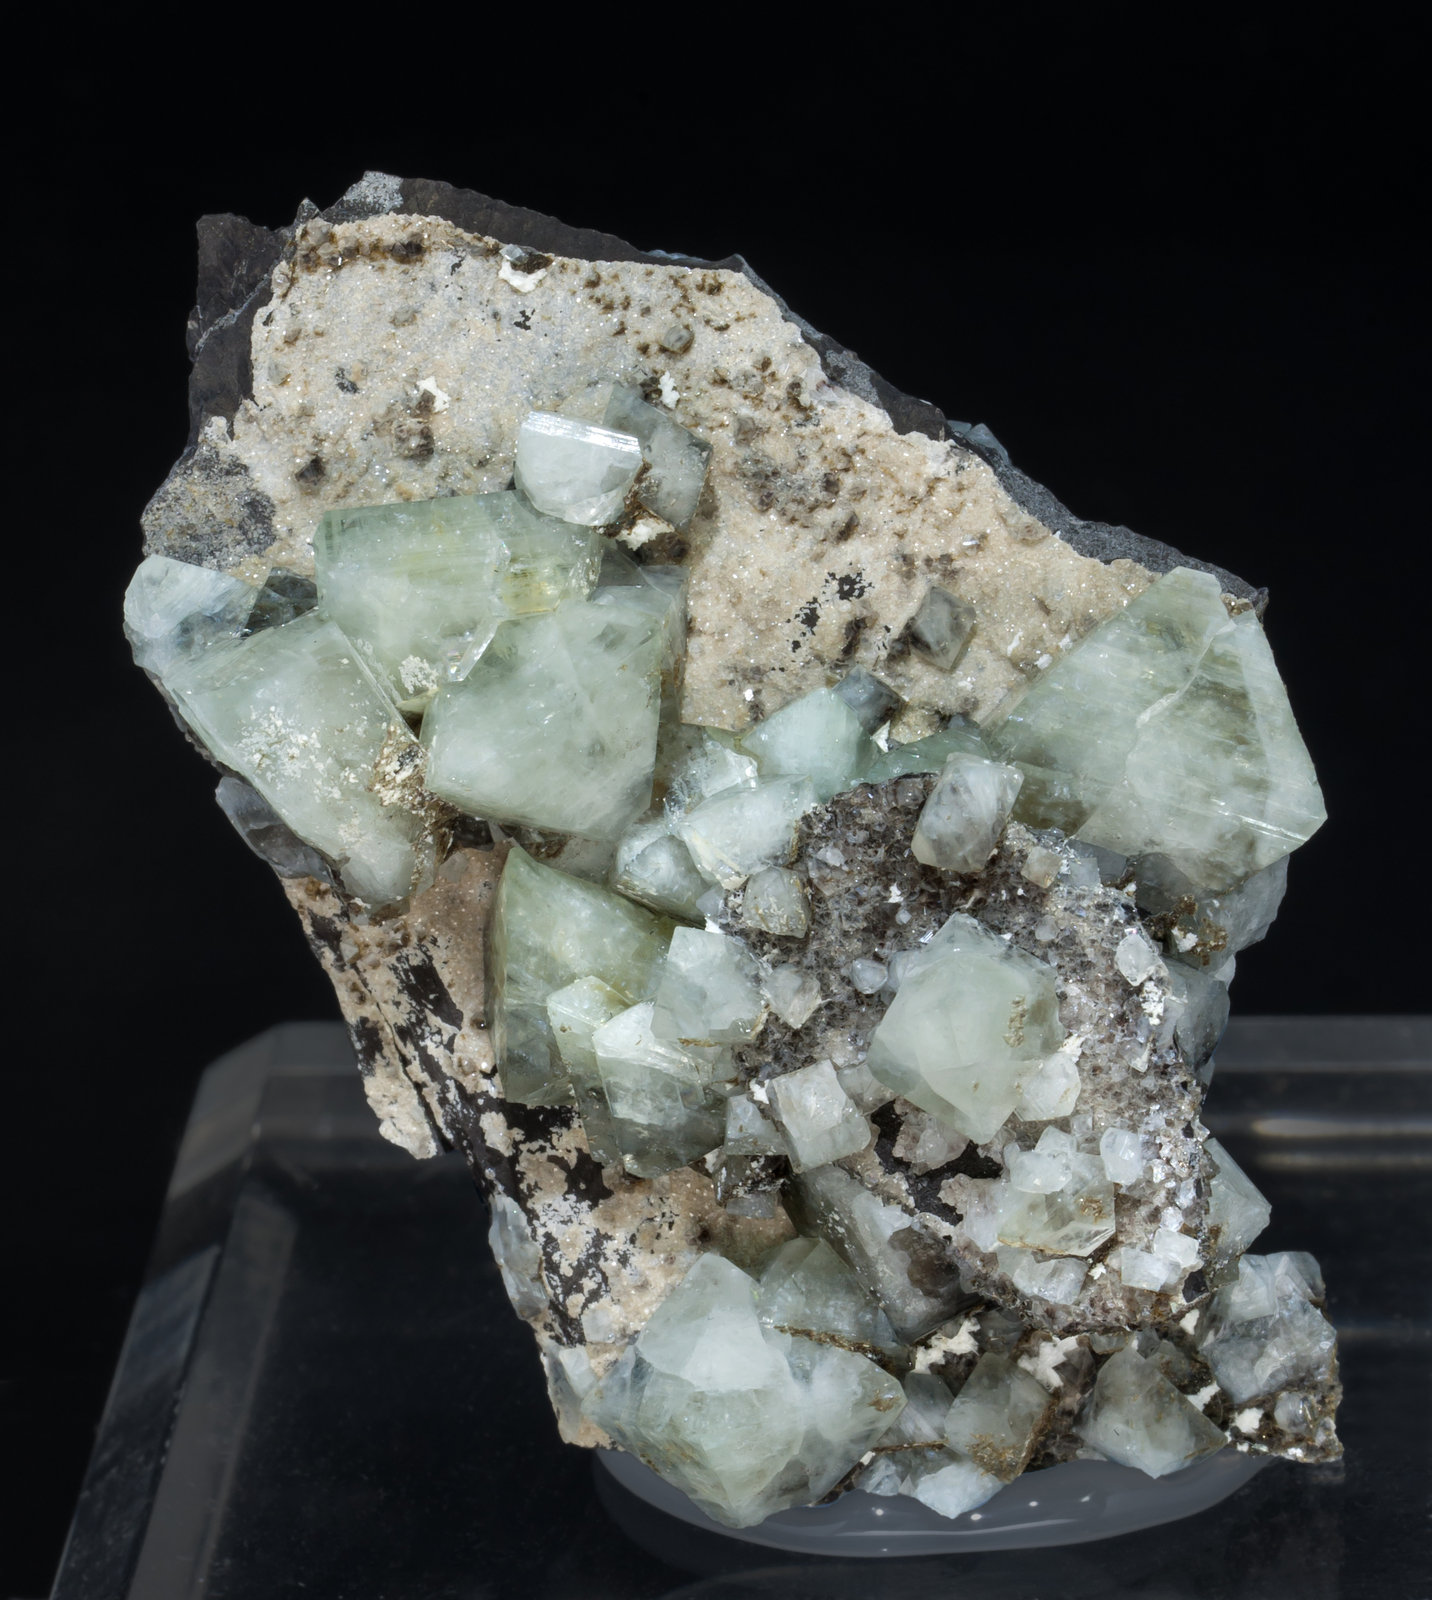 specimens/s_imagesAB1/Wardite-MF86AB1f.jpg